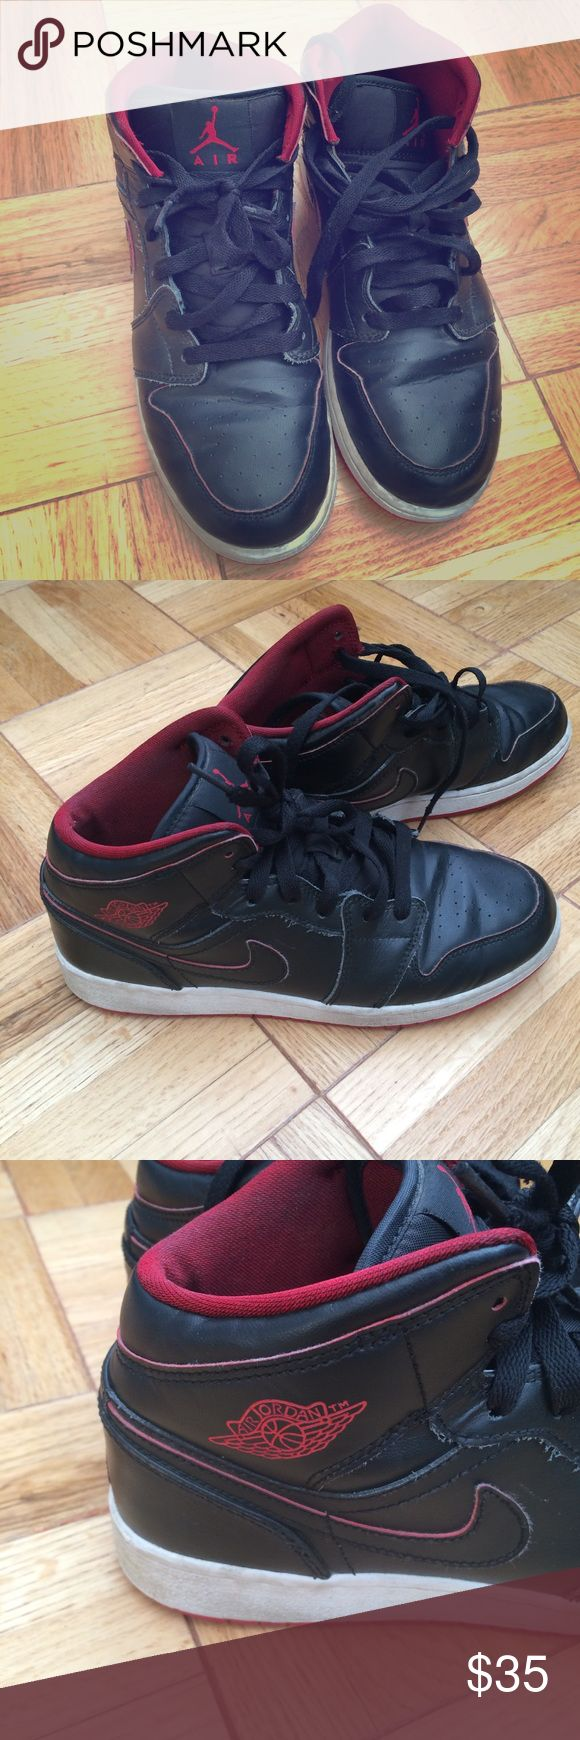 Nike youth sneakers shoes black and red Air Jordan This item is in excellent condition. You might mistake it for brand new.  All items come from a pet and smoke free home. I ship within onebusiness day of receiving payment.  Feel free to ask for more information or details pictures about the item! Nike Shoes Sneakers